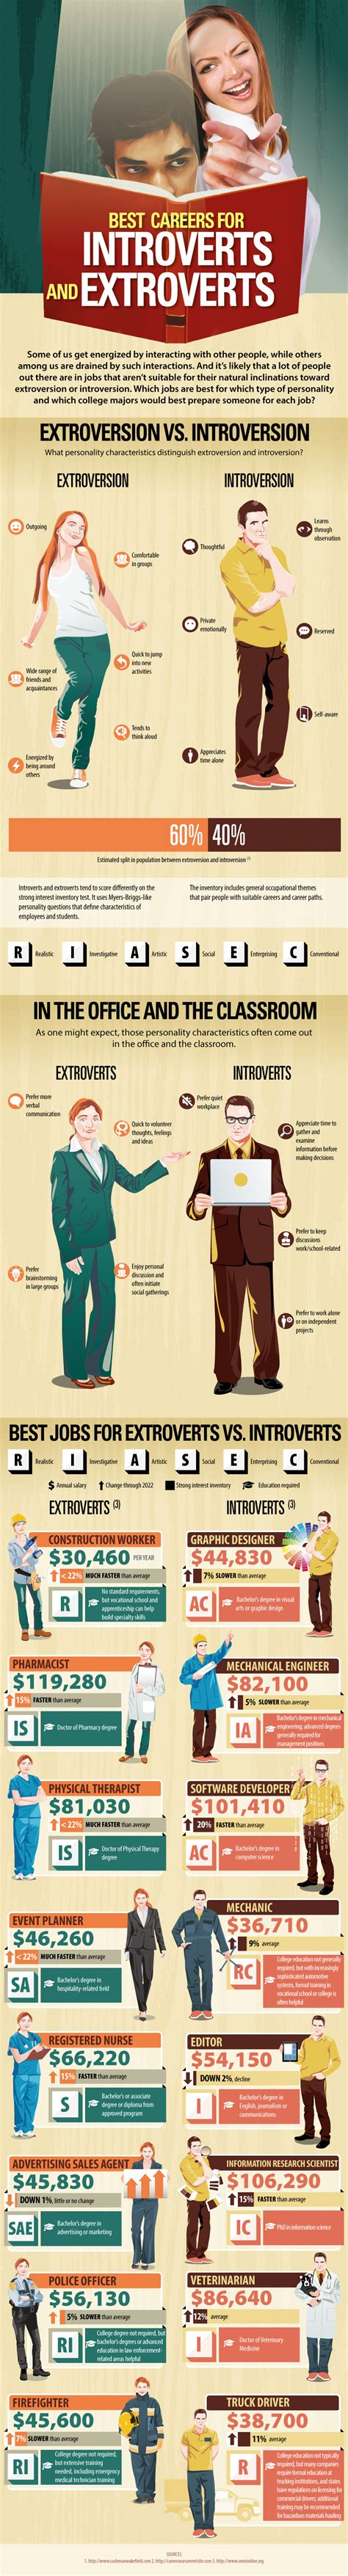 the best careers and college majors for extroverts and introverts